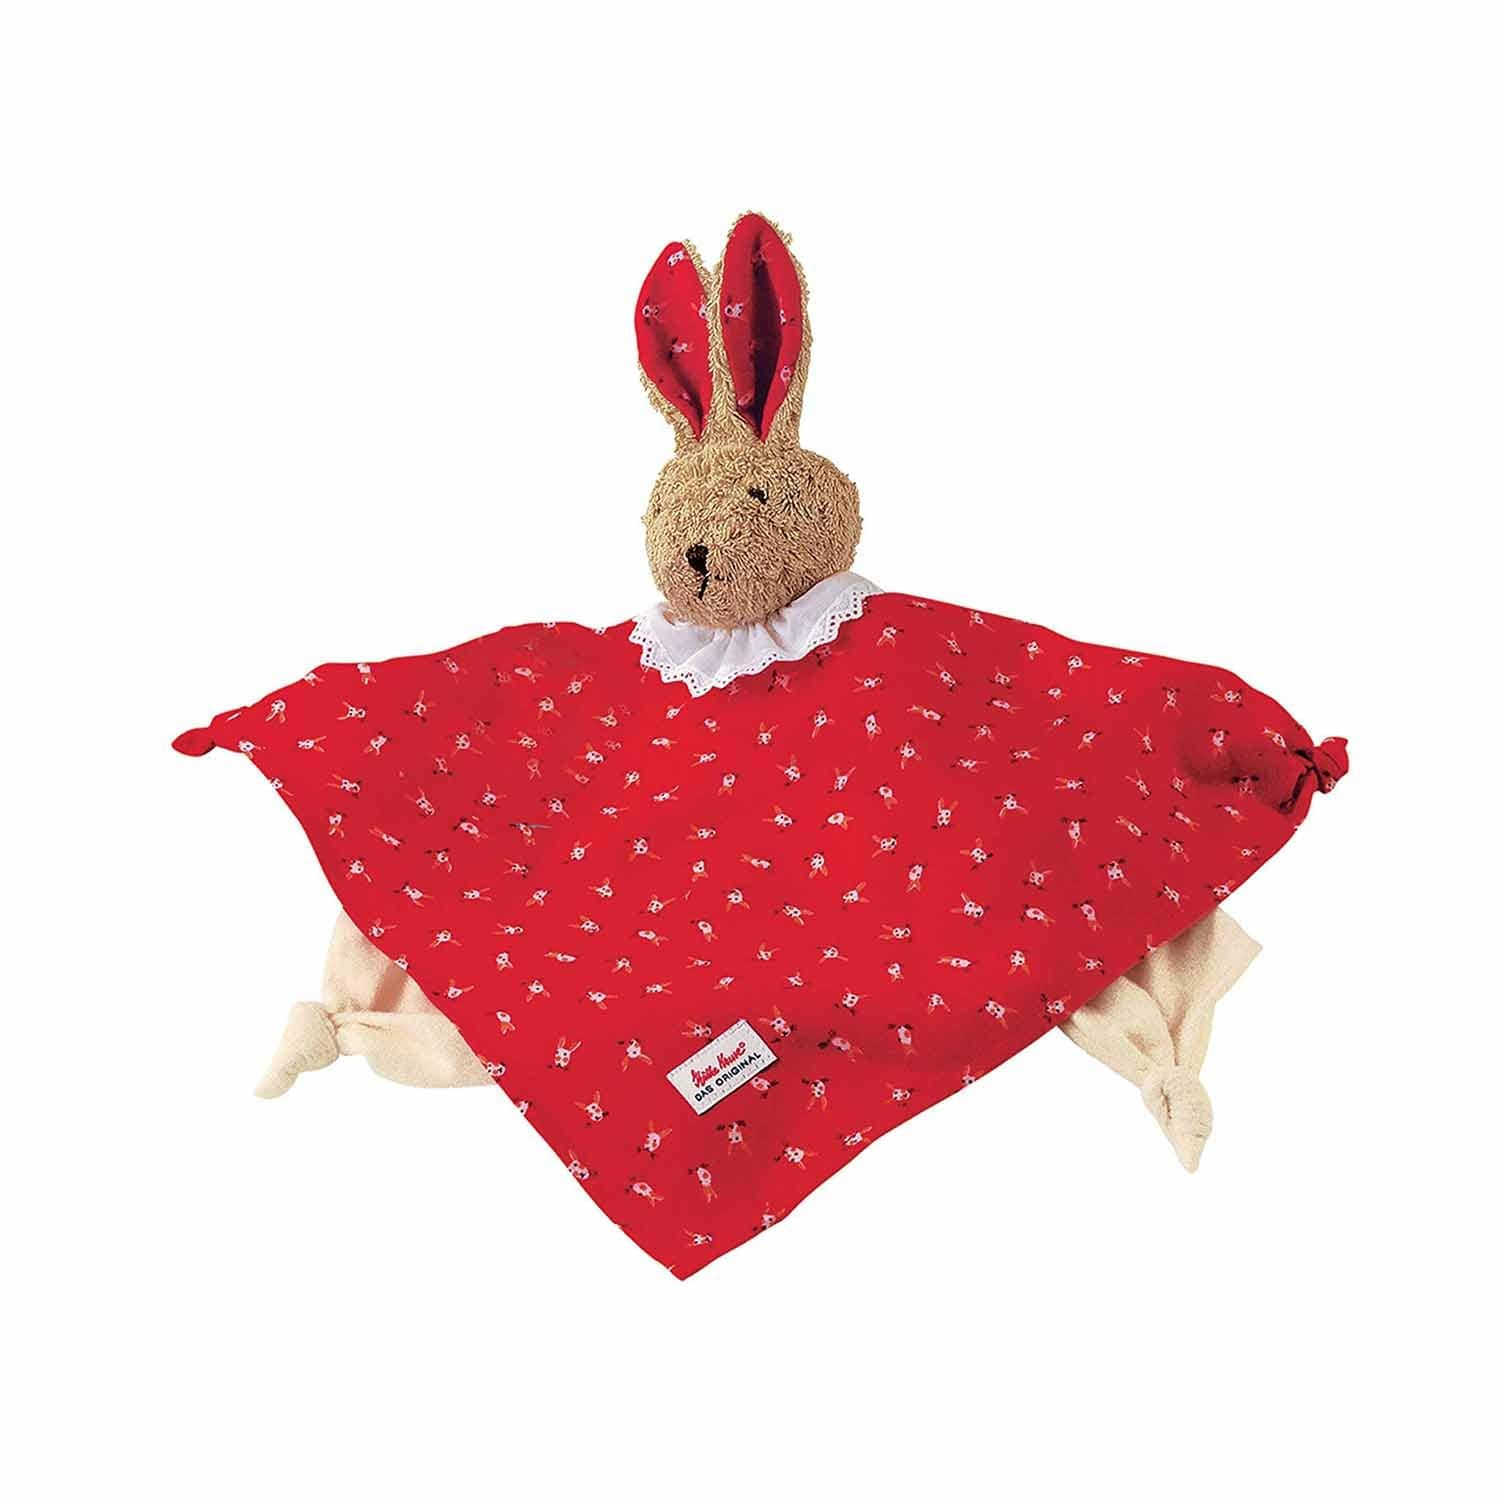 Kathe Kruse Classic Towel Doll Bunny Red